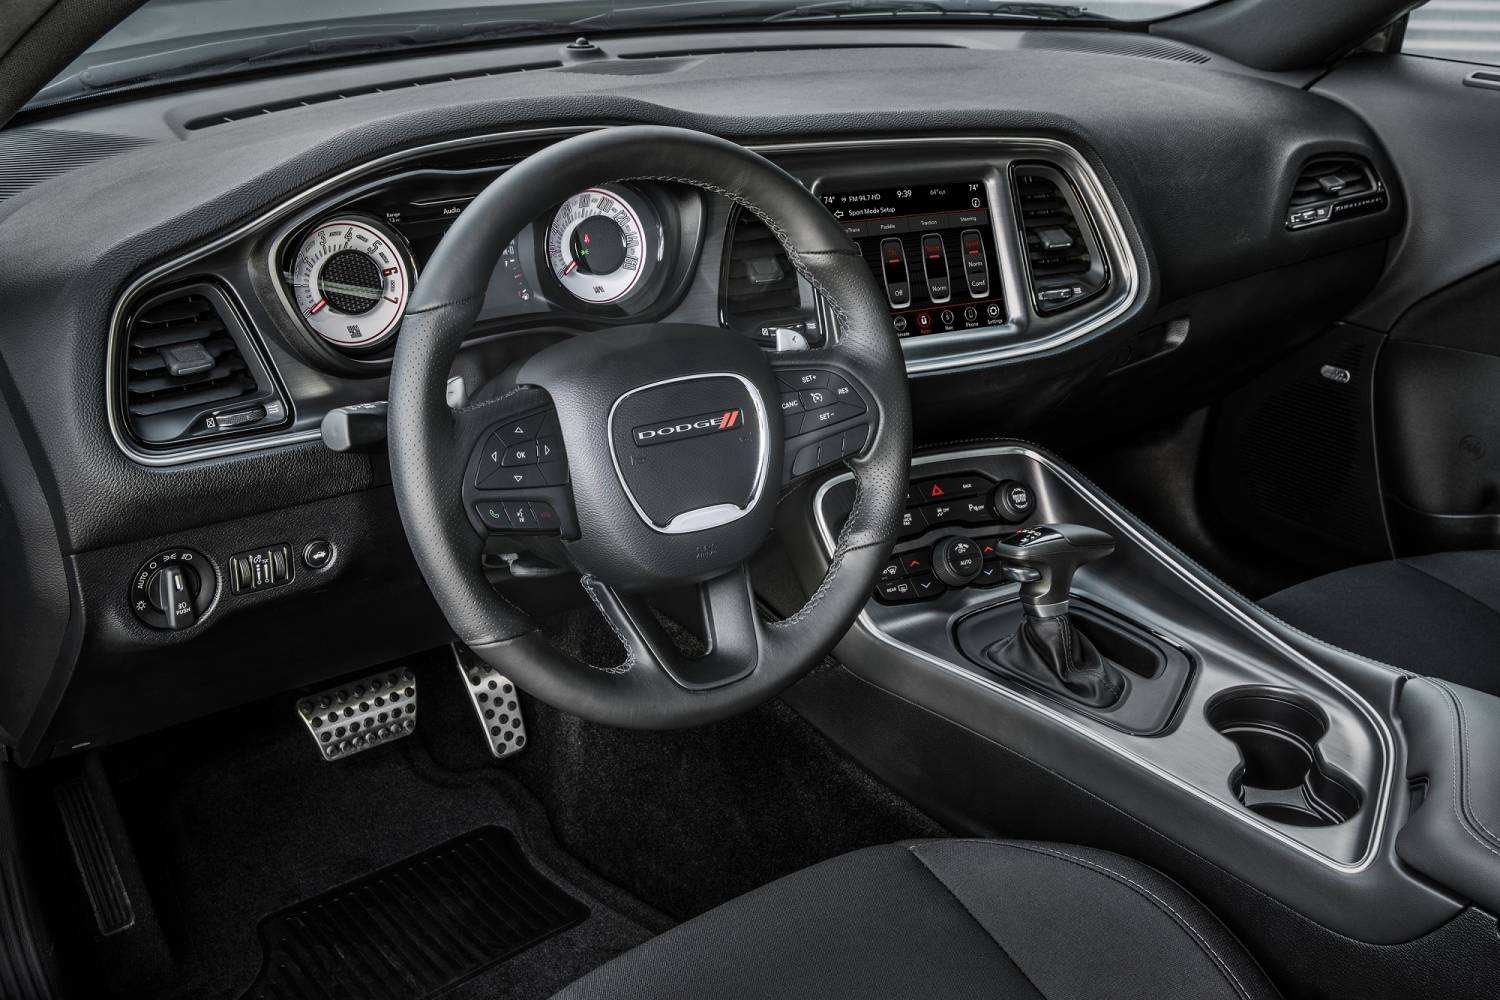 48 New 2020 Dodge Challenger Awd First Drive by 2020 Dodge Challenger Awd